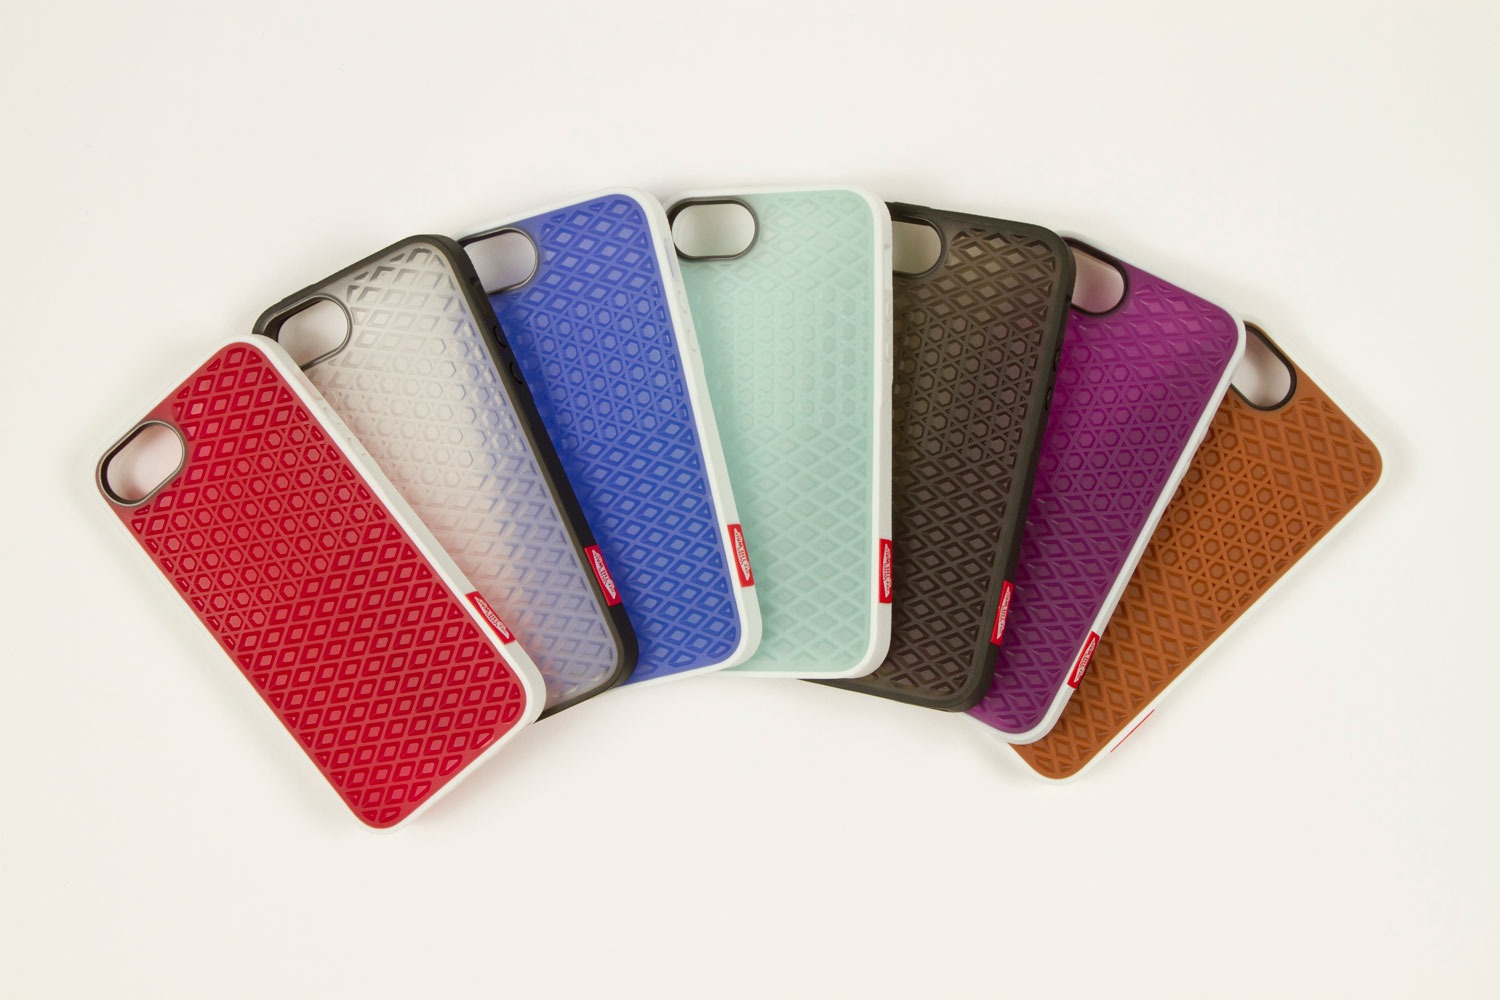 Vans x Belkin iPhone 5 Waffle Sole Case Collection